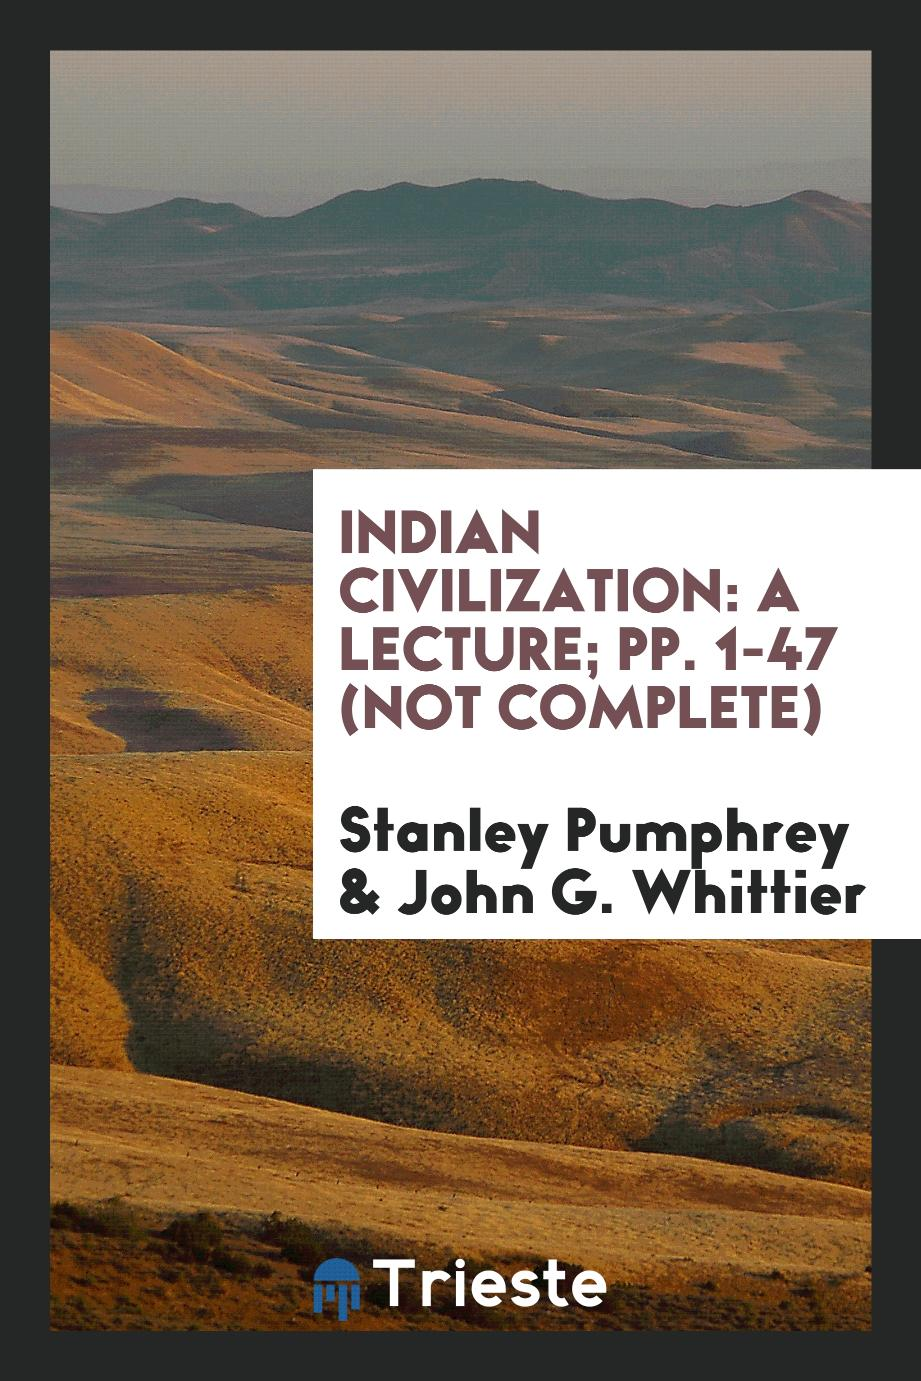 Indian Civilization: A Lecture; pp. 1-47 (Not complete)